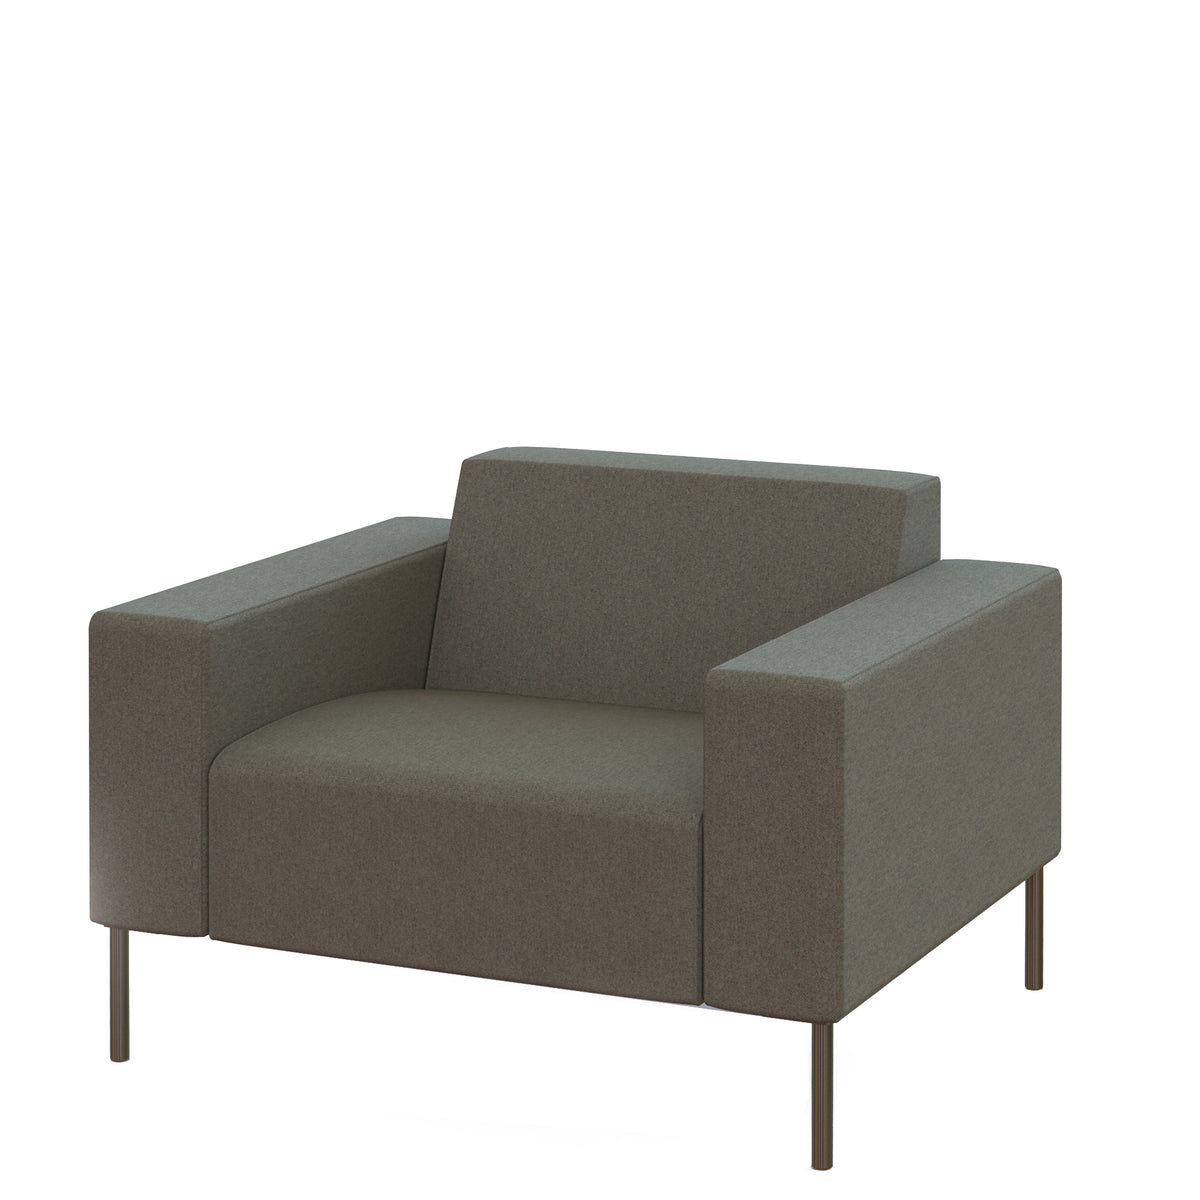 Hitch Mylius HM18 Origin Armchair Brushed Stainless Steel Legs Camden